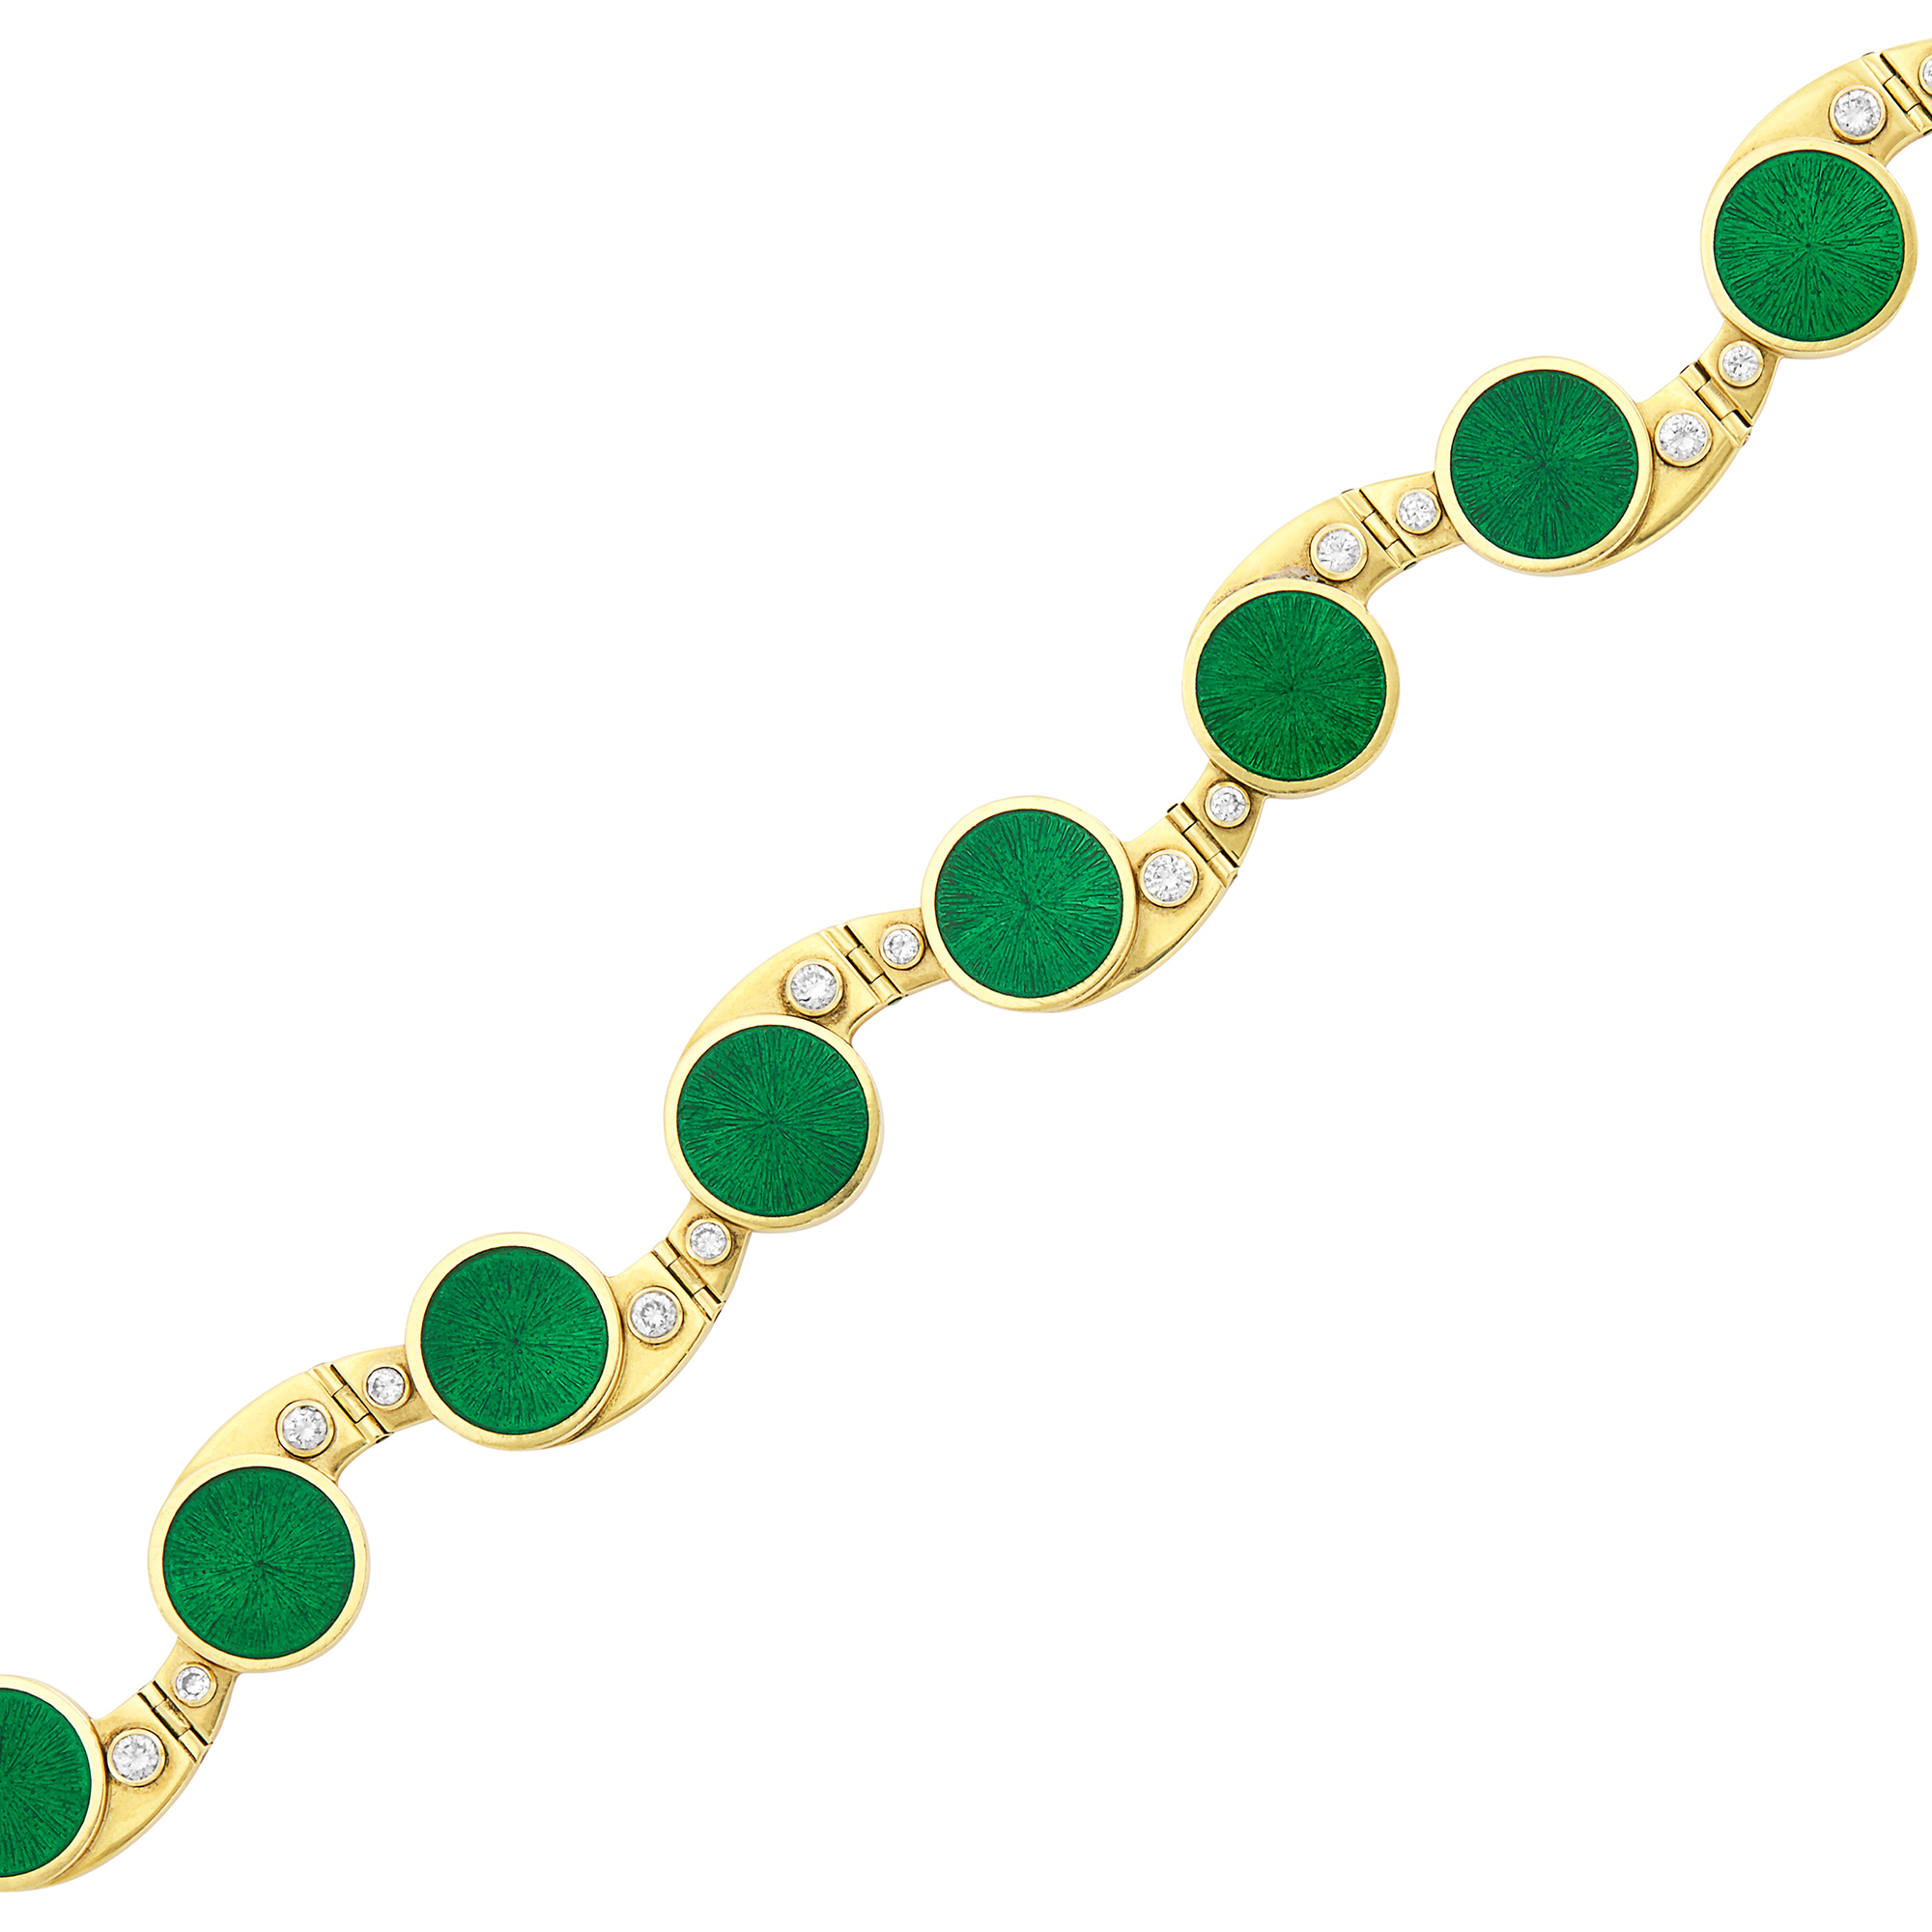 Lot image - Gold, Green Enamel and Diamond Bracelet, Simon Benney